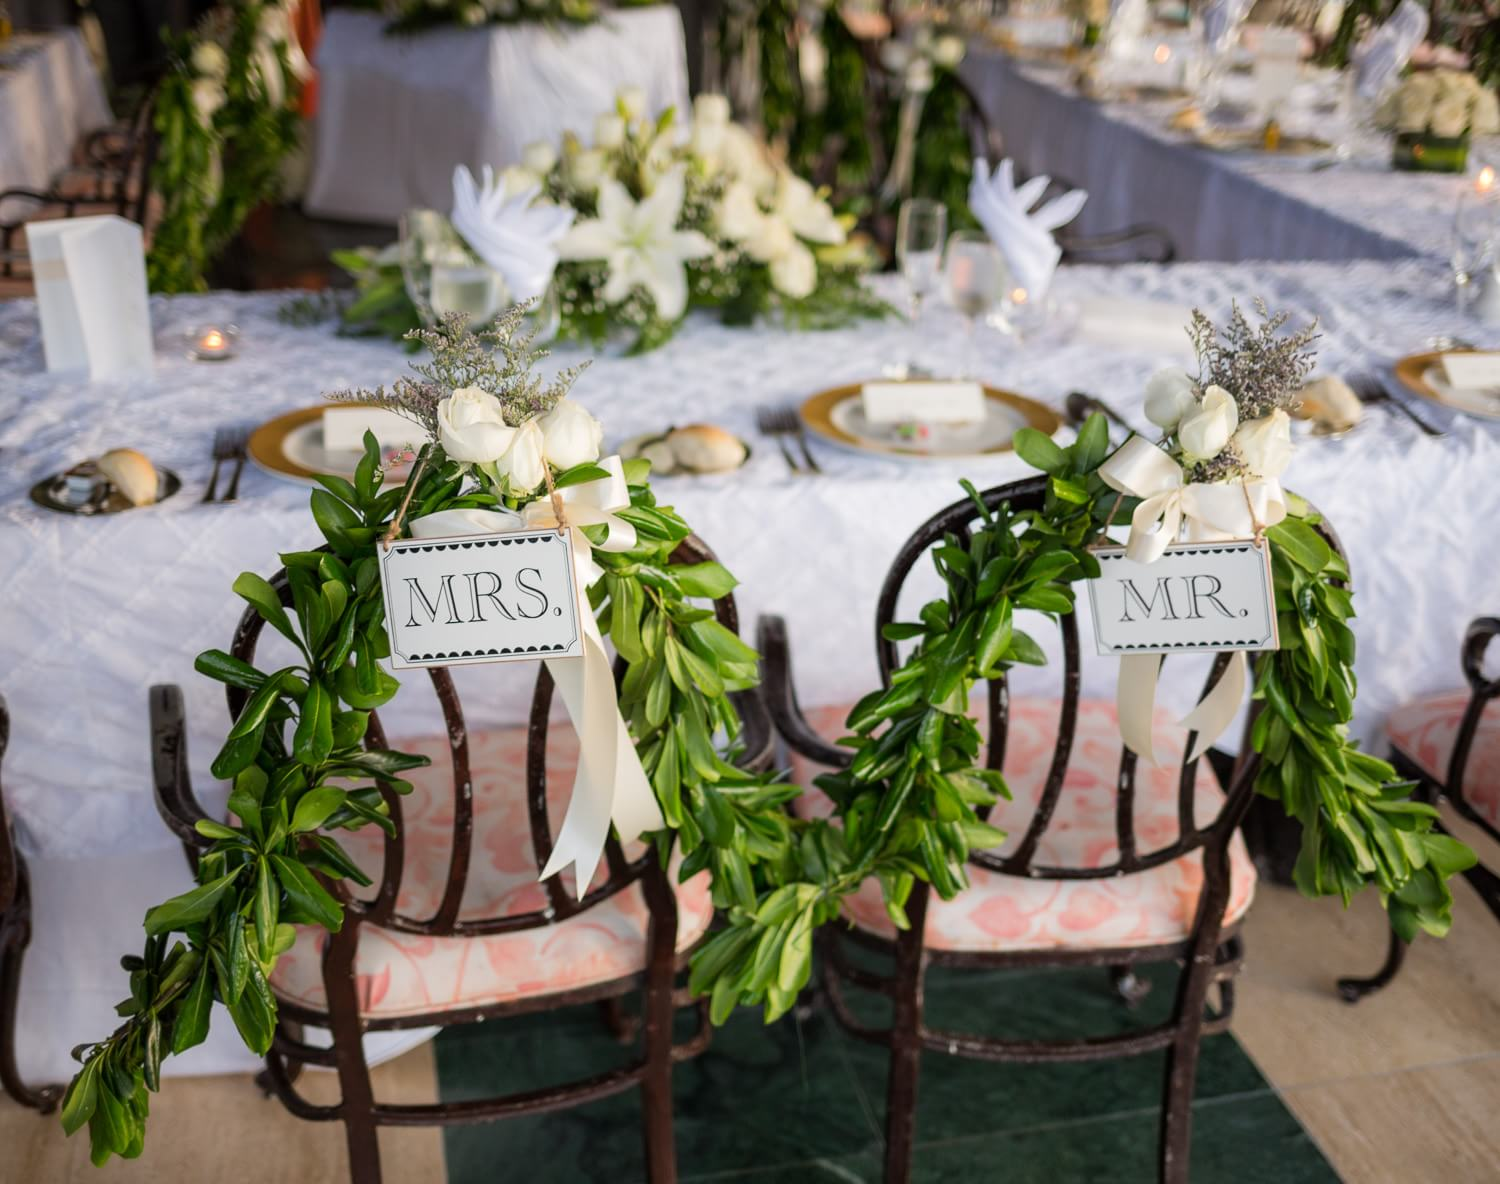 Detail of bride and grooms chairs at wedding.